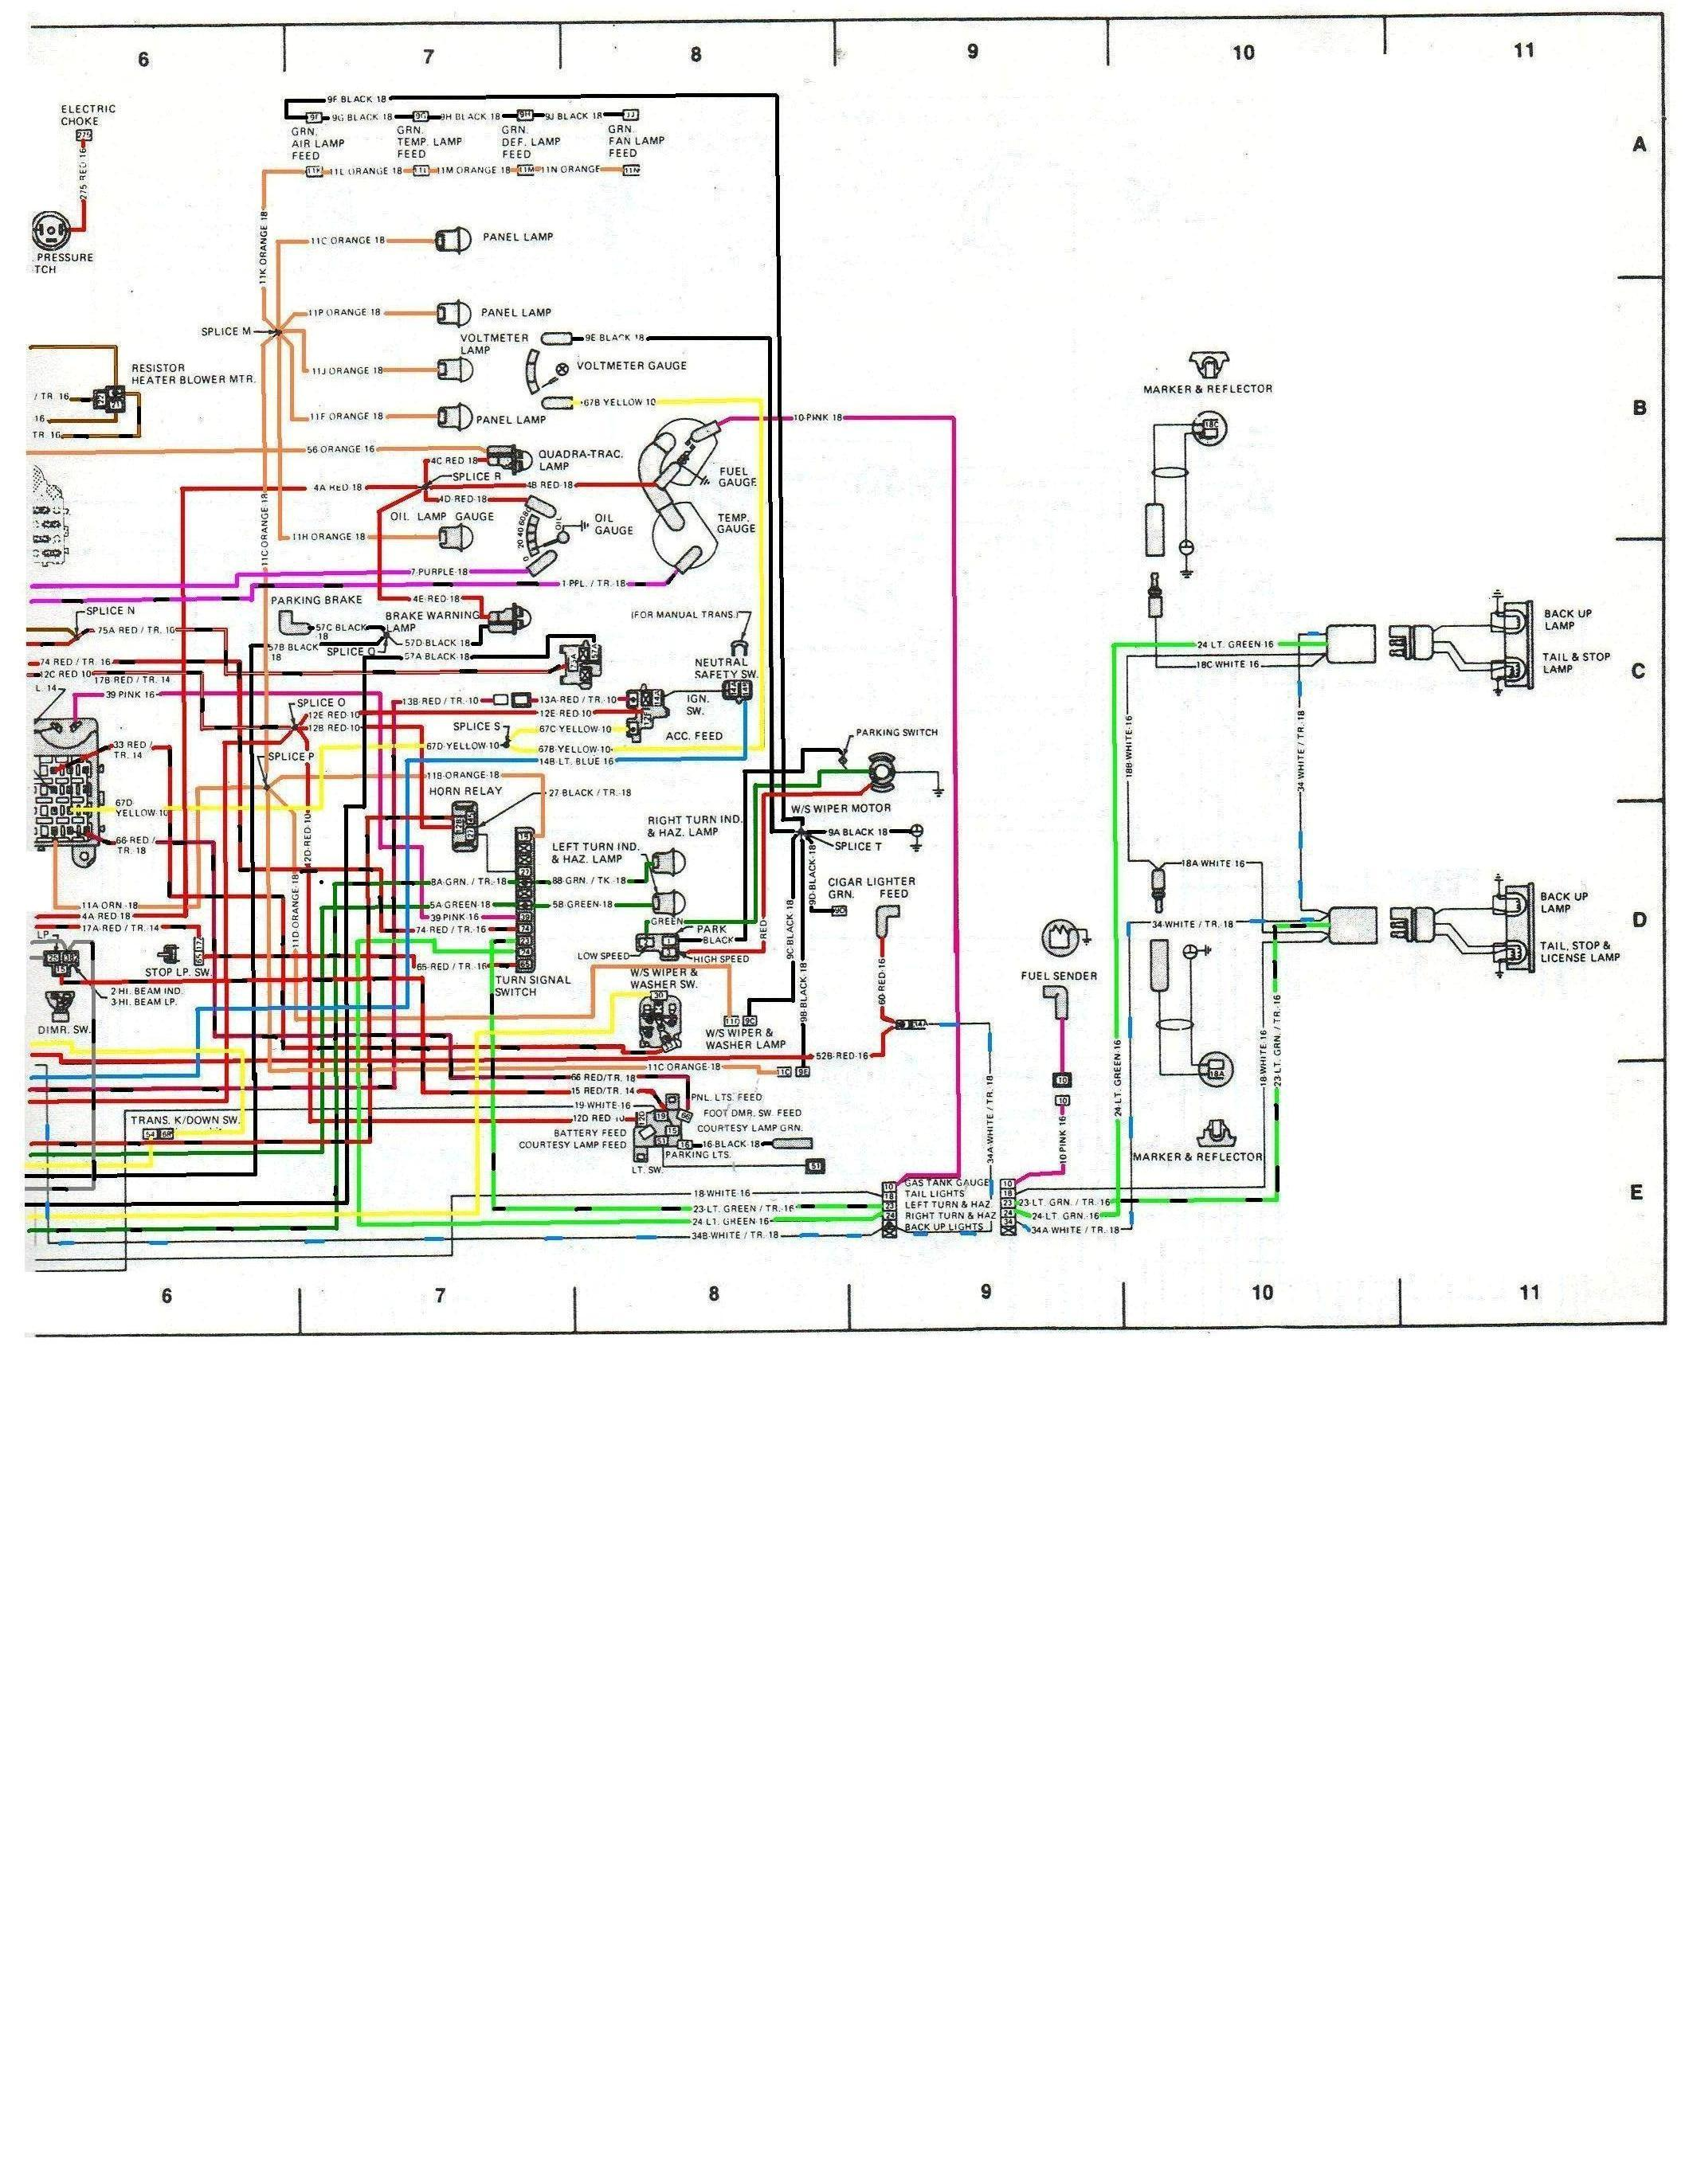 Firewall 2006 Pt Cruiser Wiring Diagram Content Resource Of 06 Fuse Wire 1986 Cj7 Automatic Layout Diagrams U2022 Rh Laurafinlay Co Uk Fan Relay 2003 2 4 Turbo Engine